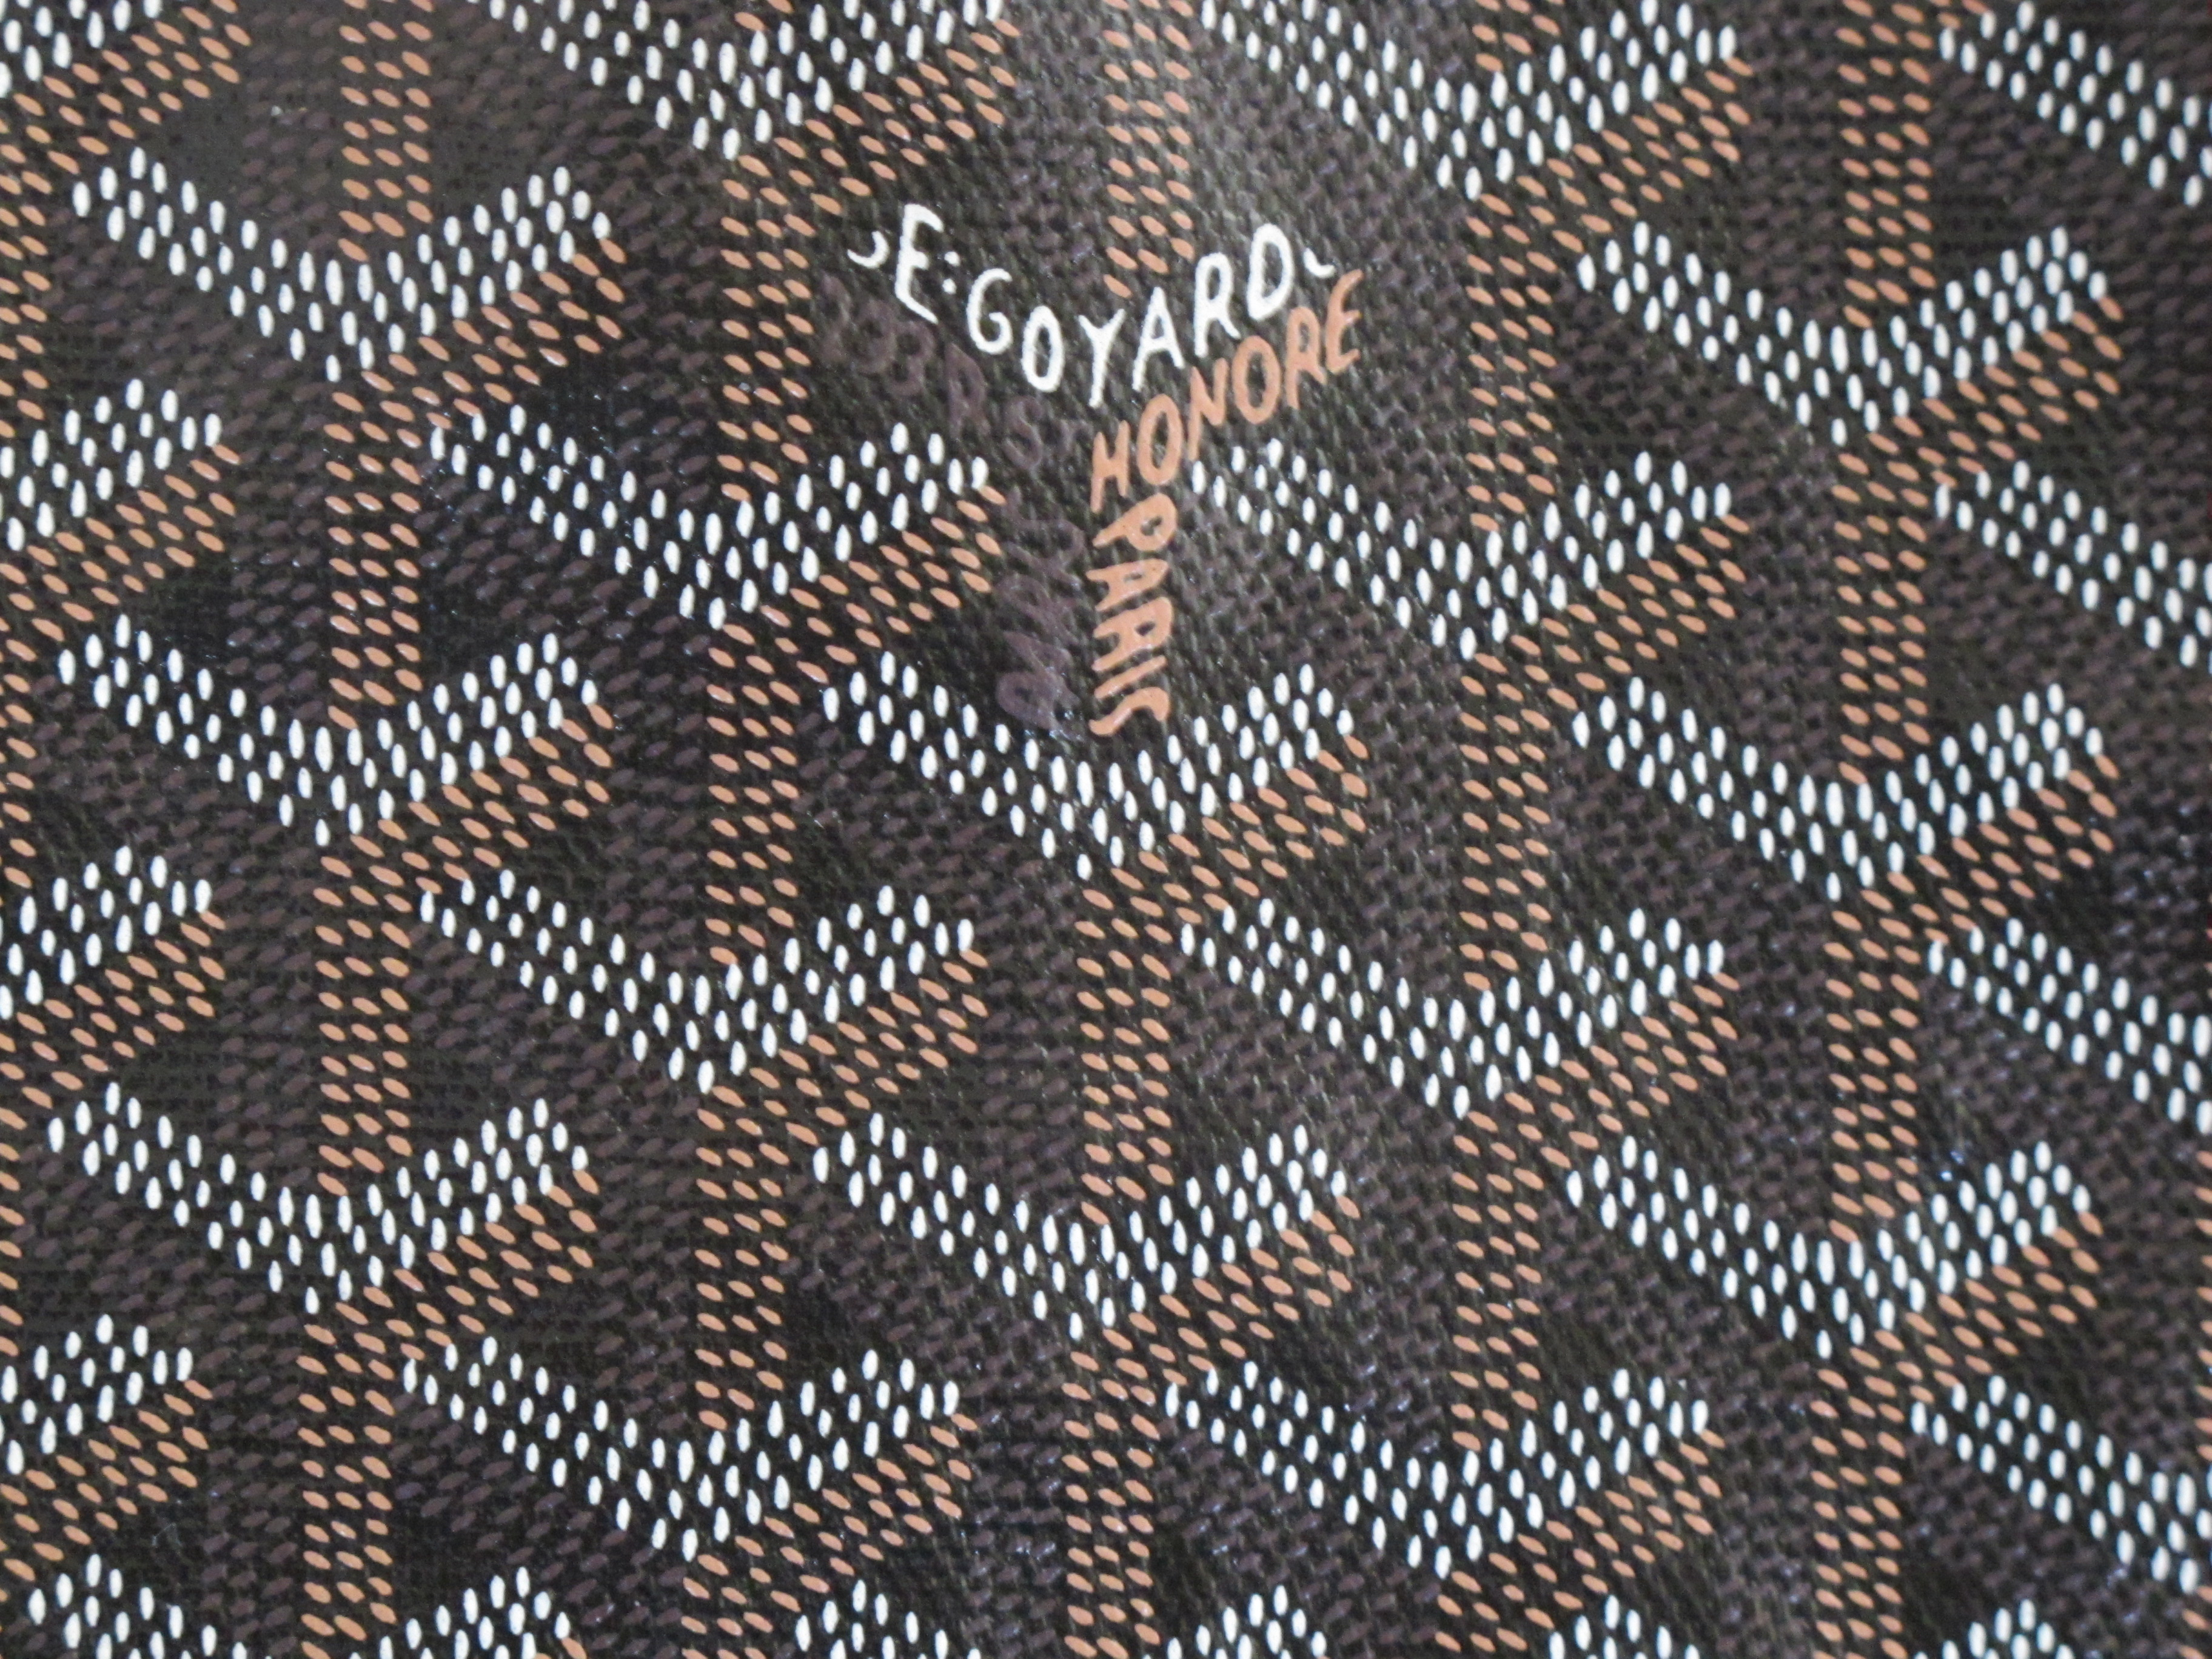 How To: Goyard's Repeating Pattern - YouTube